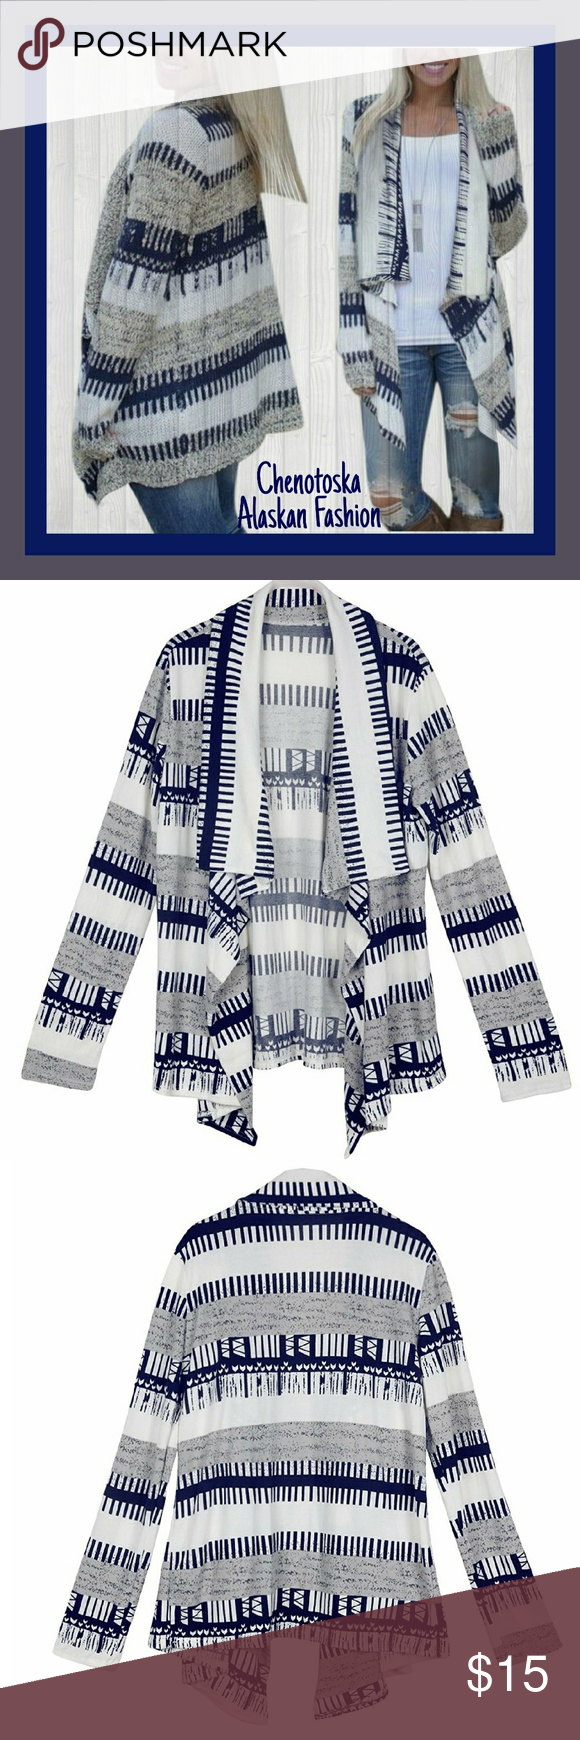 """🌟LIMITED TIME🌟Geometric Print Cloak Cardigan Extremely soft, comfortable, stretchable.  T shirt material  Material- Cotton Blend   SIZE CHART   Small (0-6)  Chest/Bust 32-35""""  Waist 24-27""""  Hips  34.5-37.5"""" Tops"""